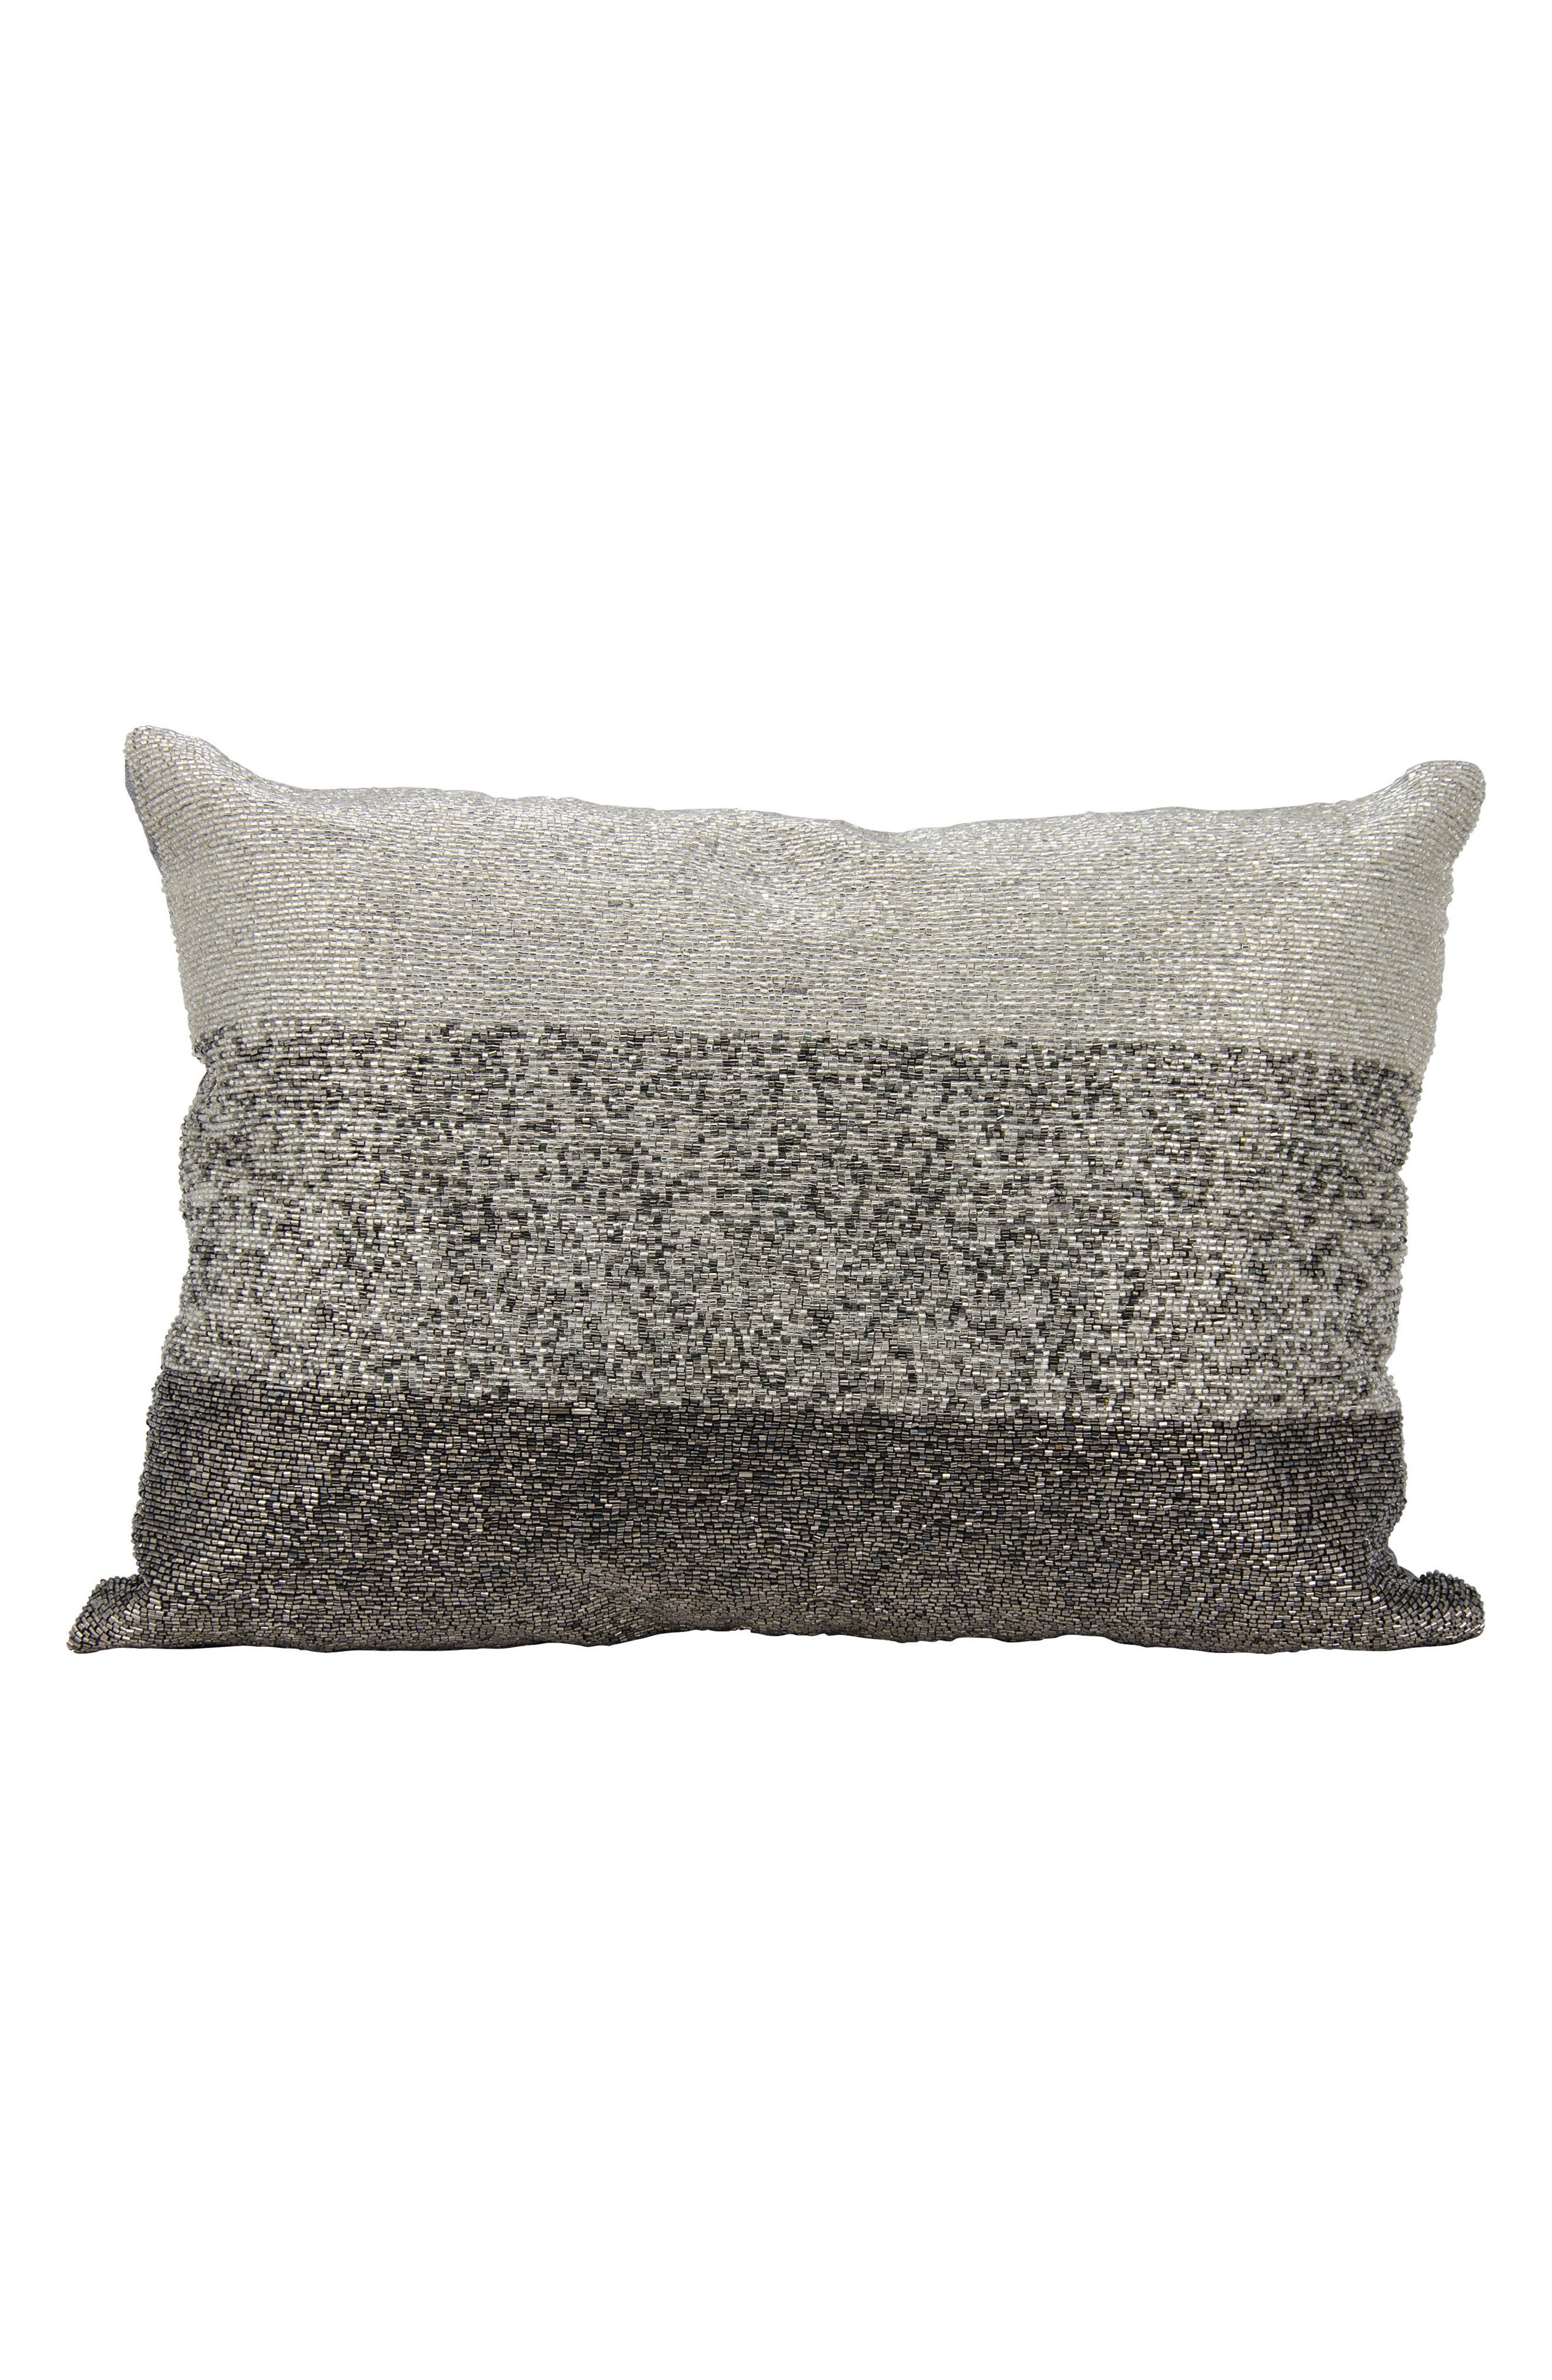 Beaded Accent Pillow,                         Main,                         color, Pewter